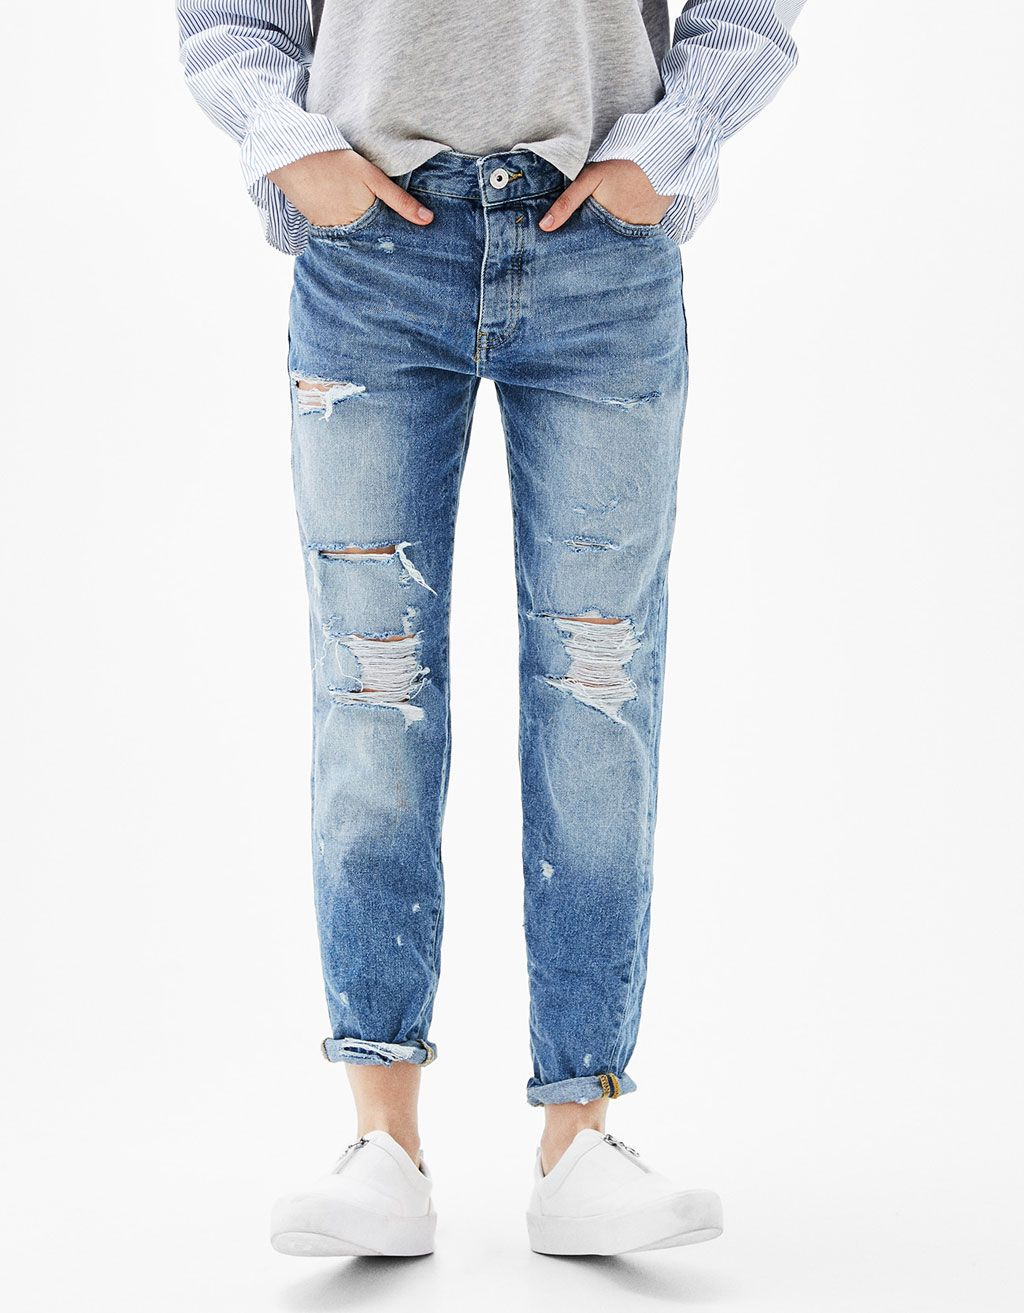 3beac01c9 Slim Boyfriend jeans with rips | Fashion | Boyfriend jeans outfit ...